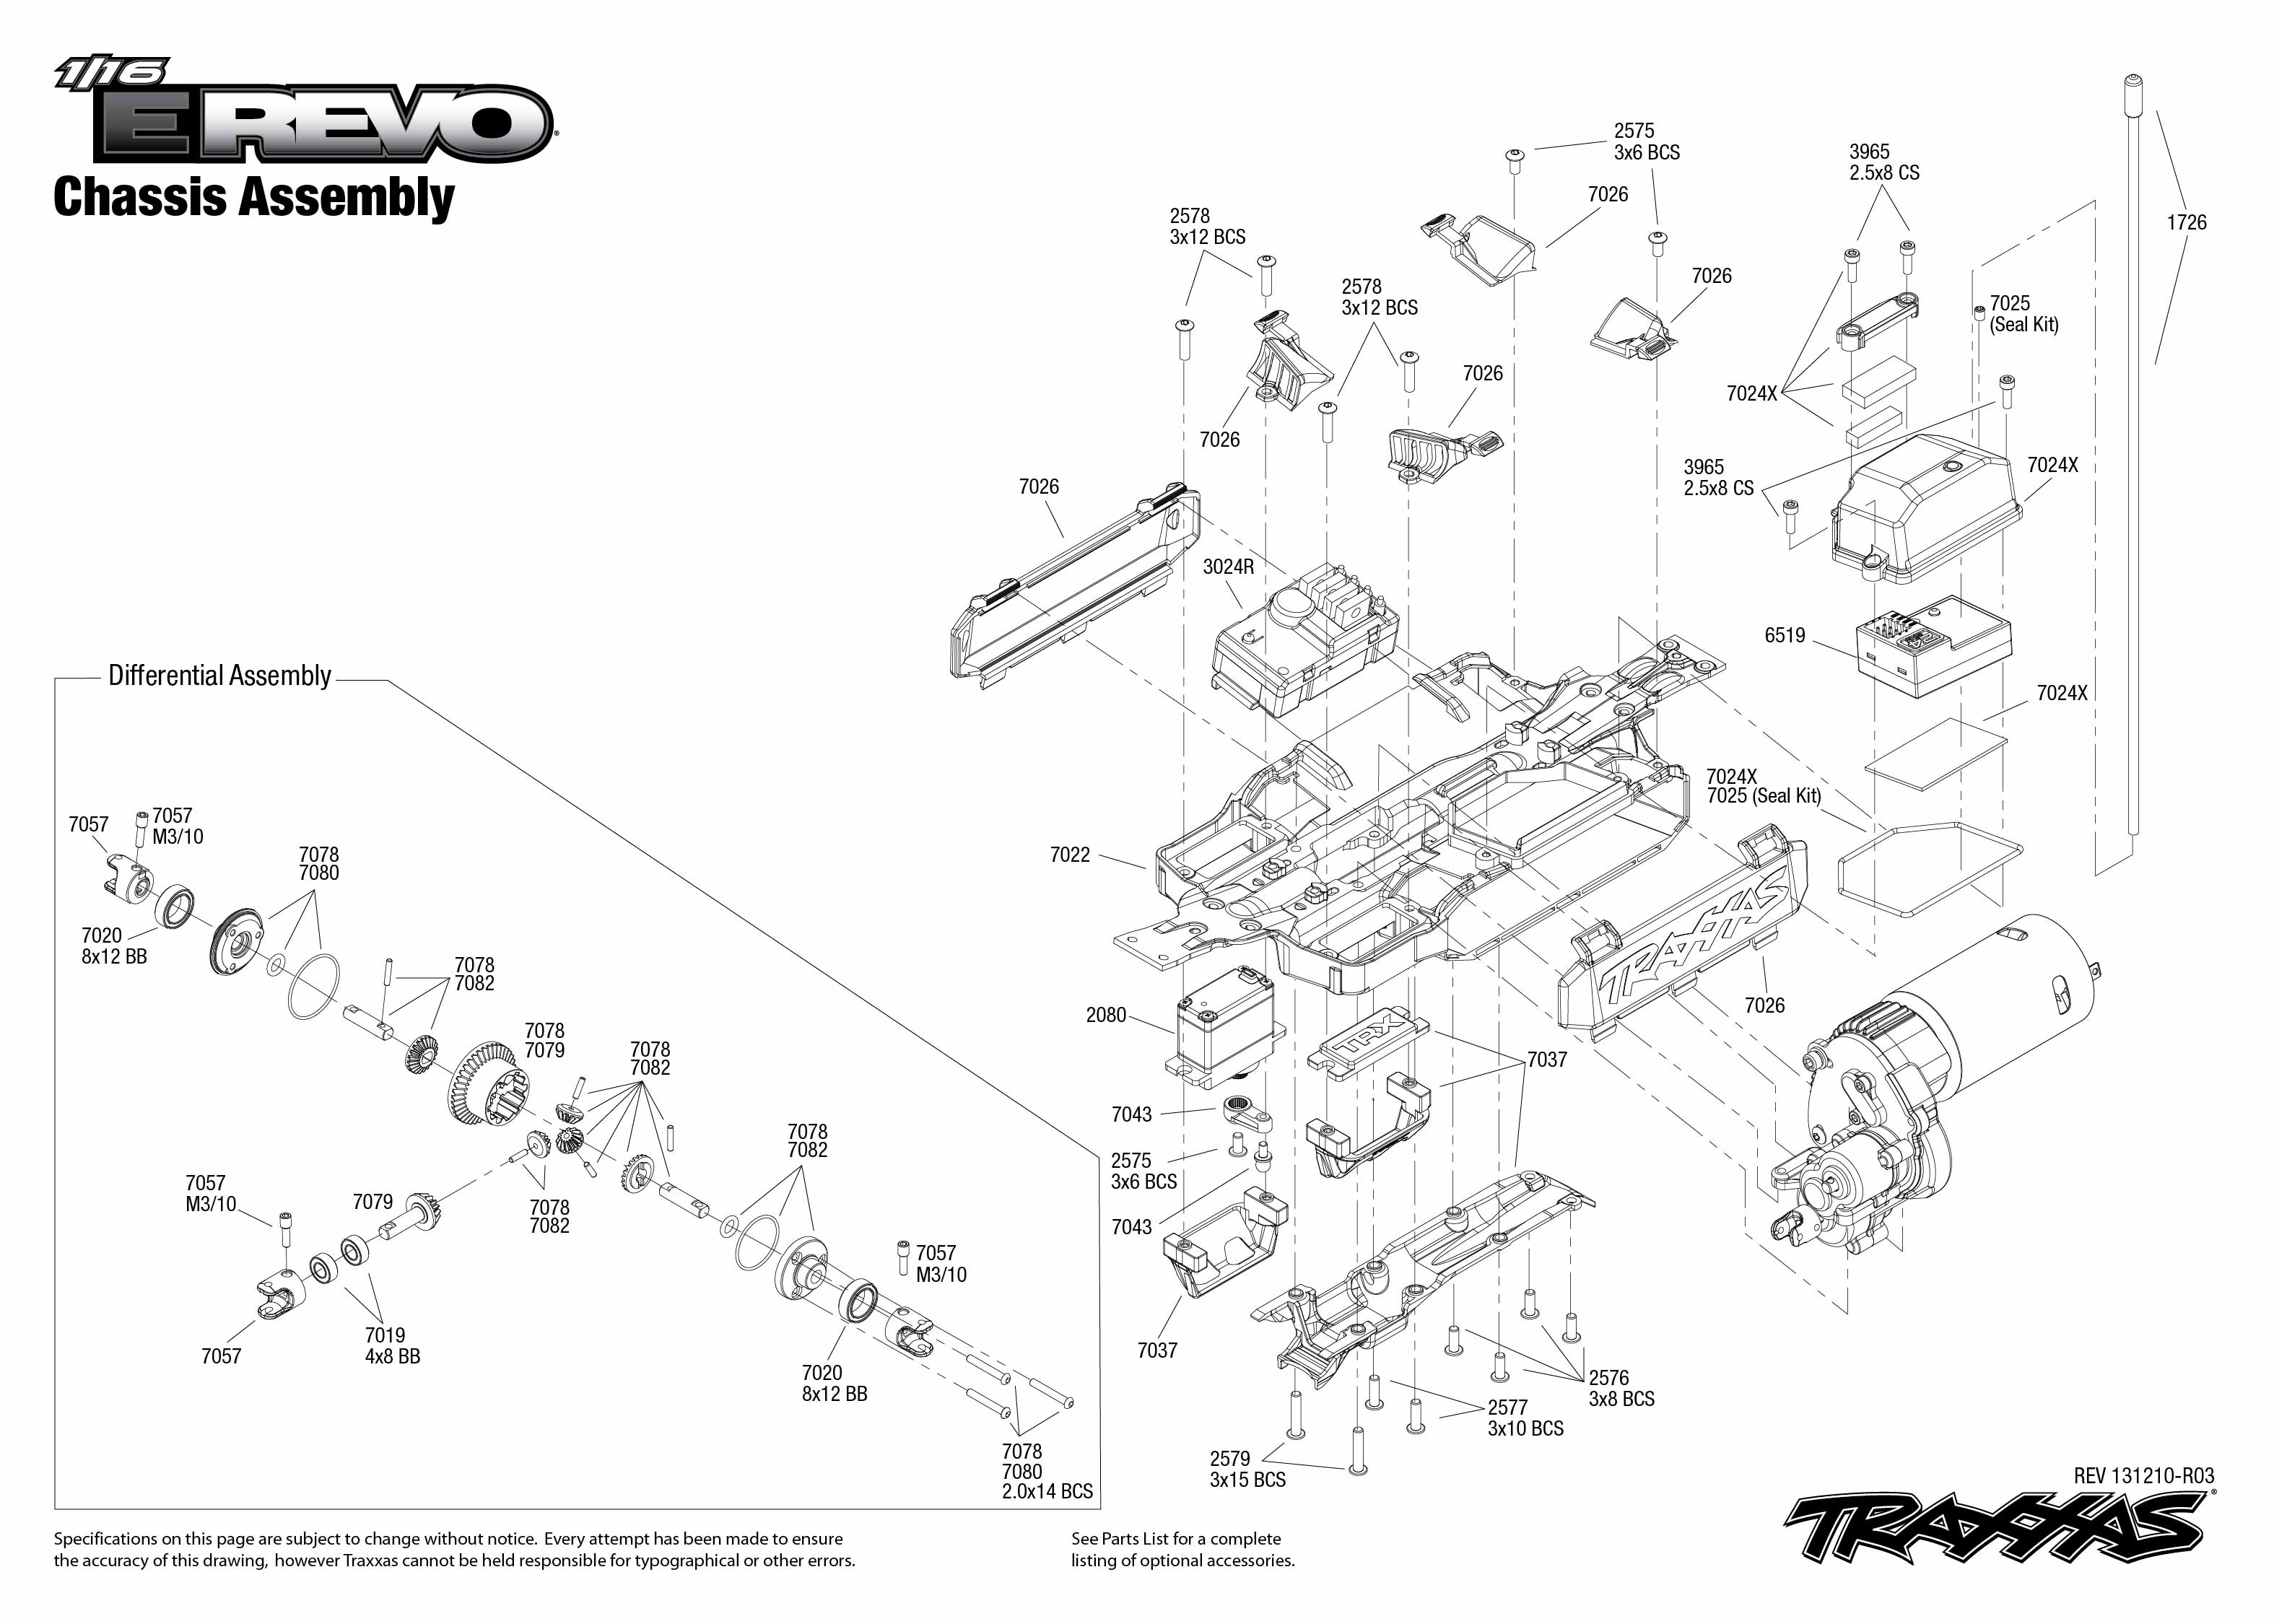 Exploded View S Voor Traxxas Modellen